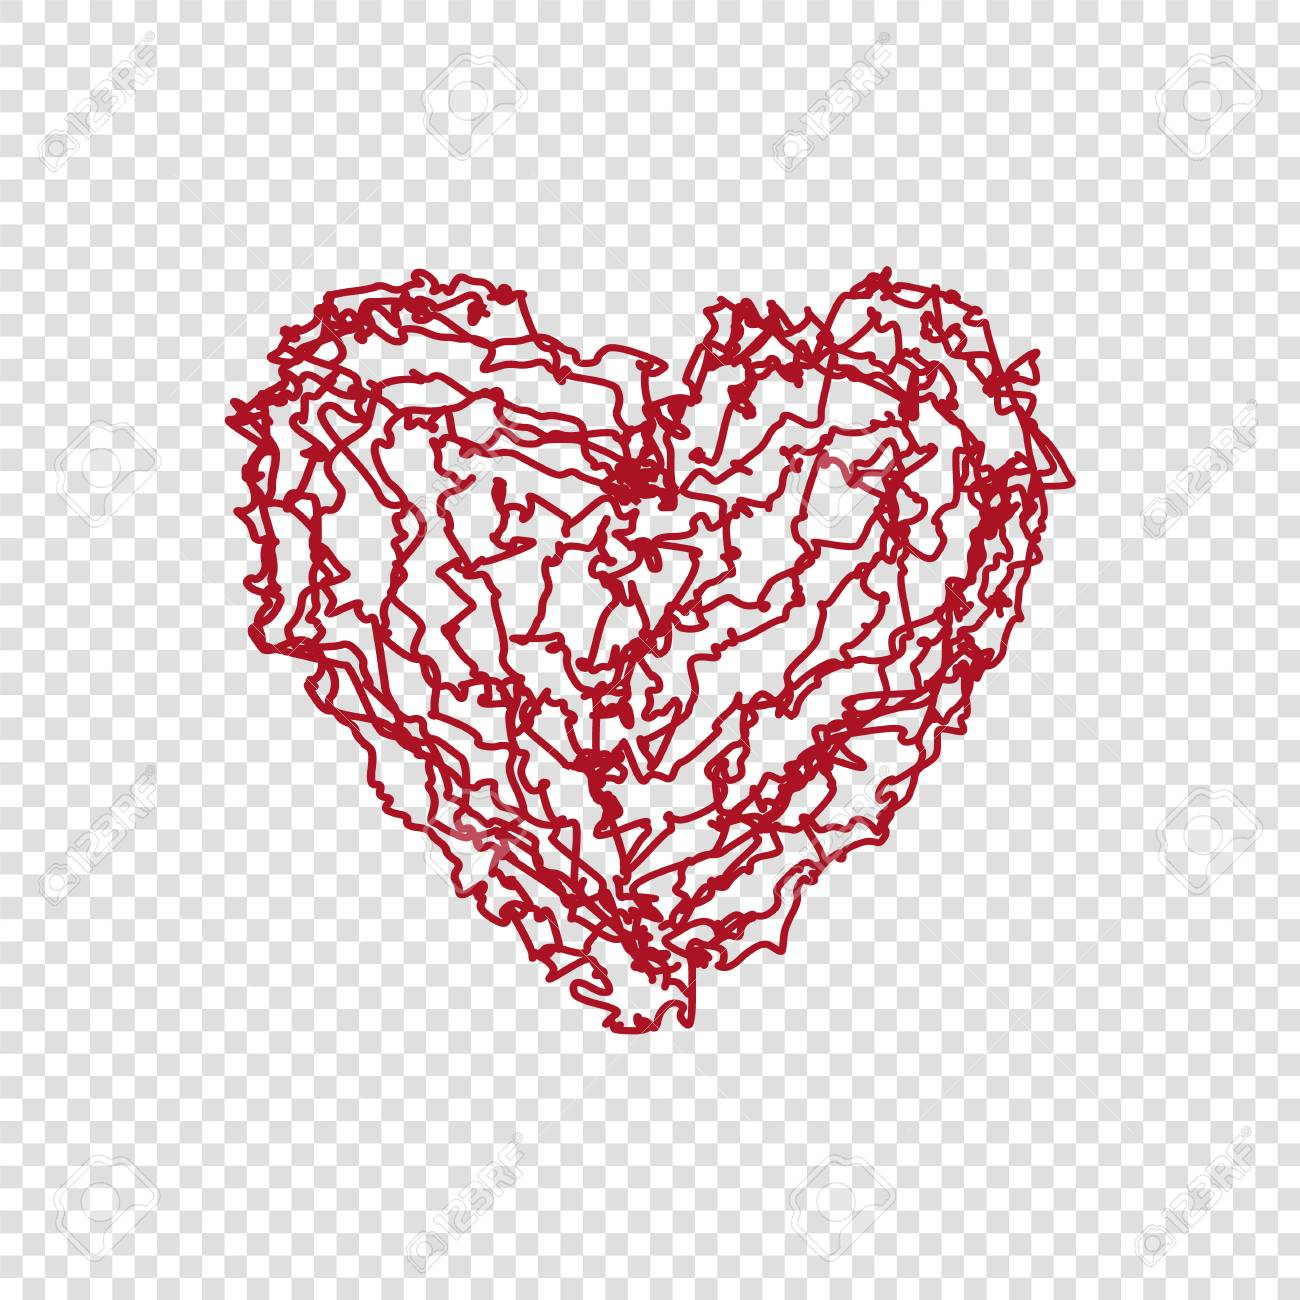 Hand Drawn Doodle Heart On Transparent Background Happy Valentines